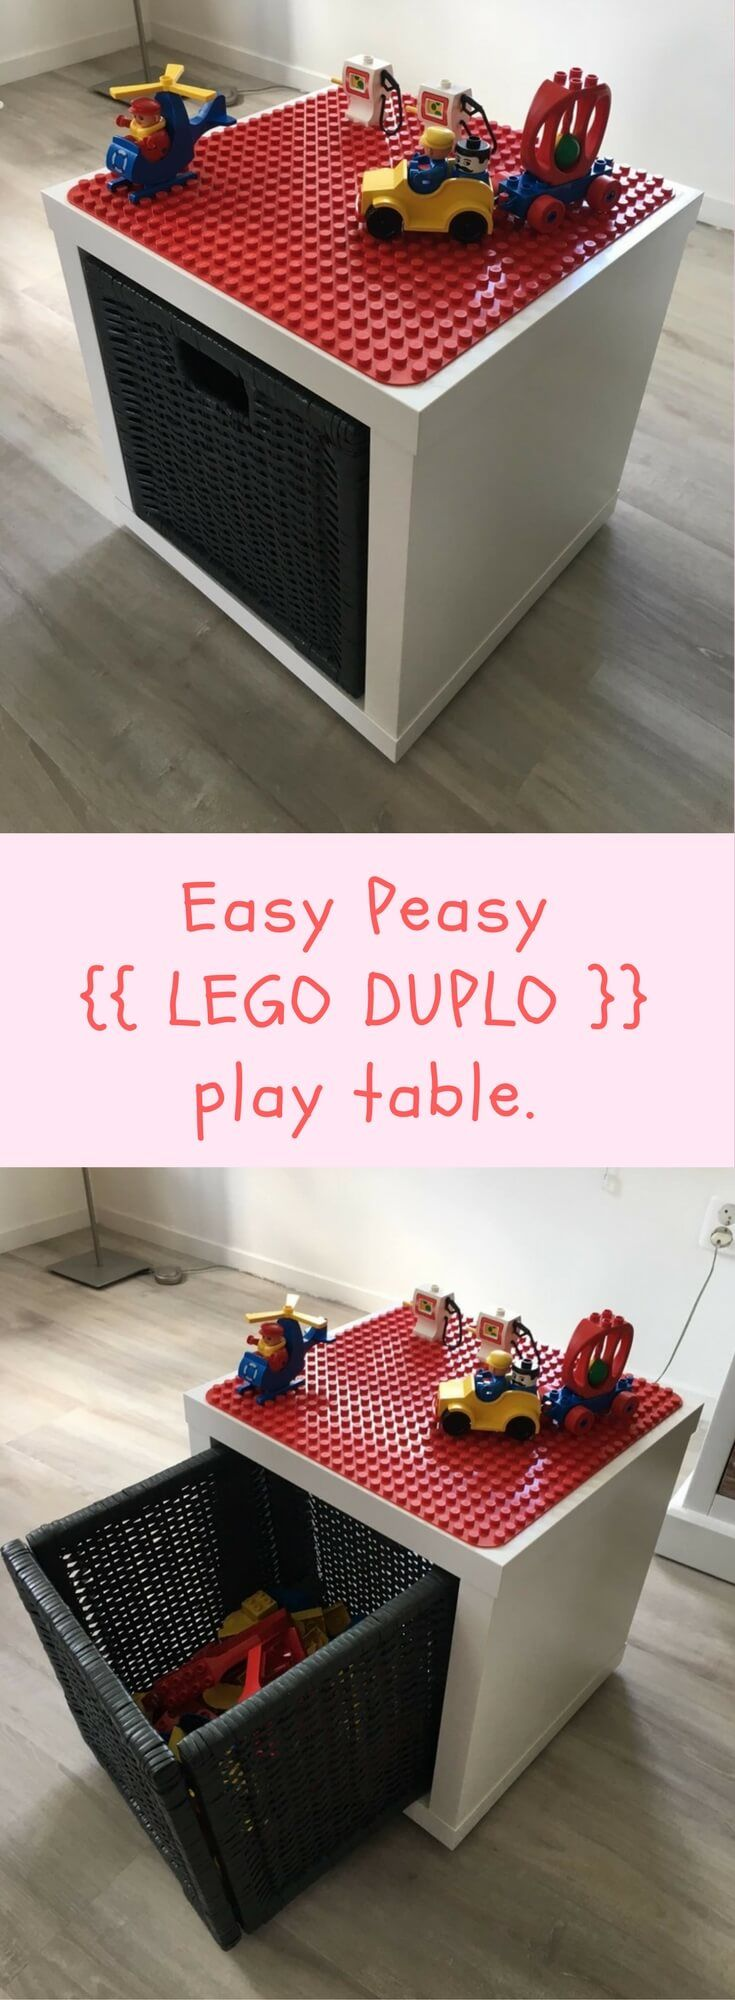 Room 2 Build Bedroom Kids Lego: LEGO Duplo Play And Store Box